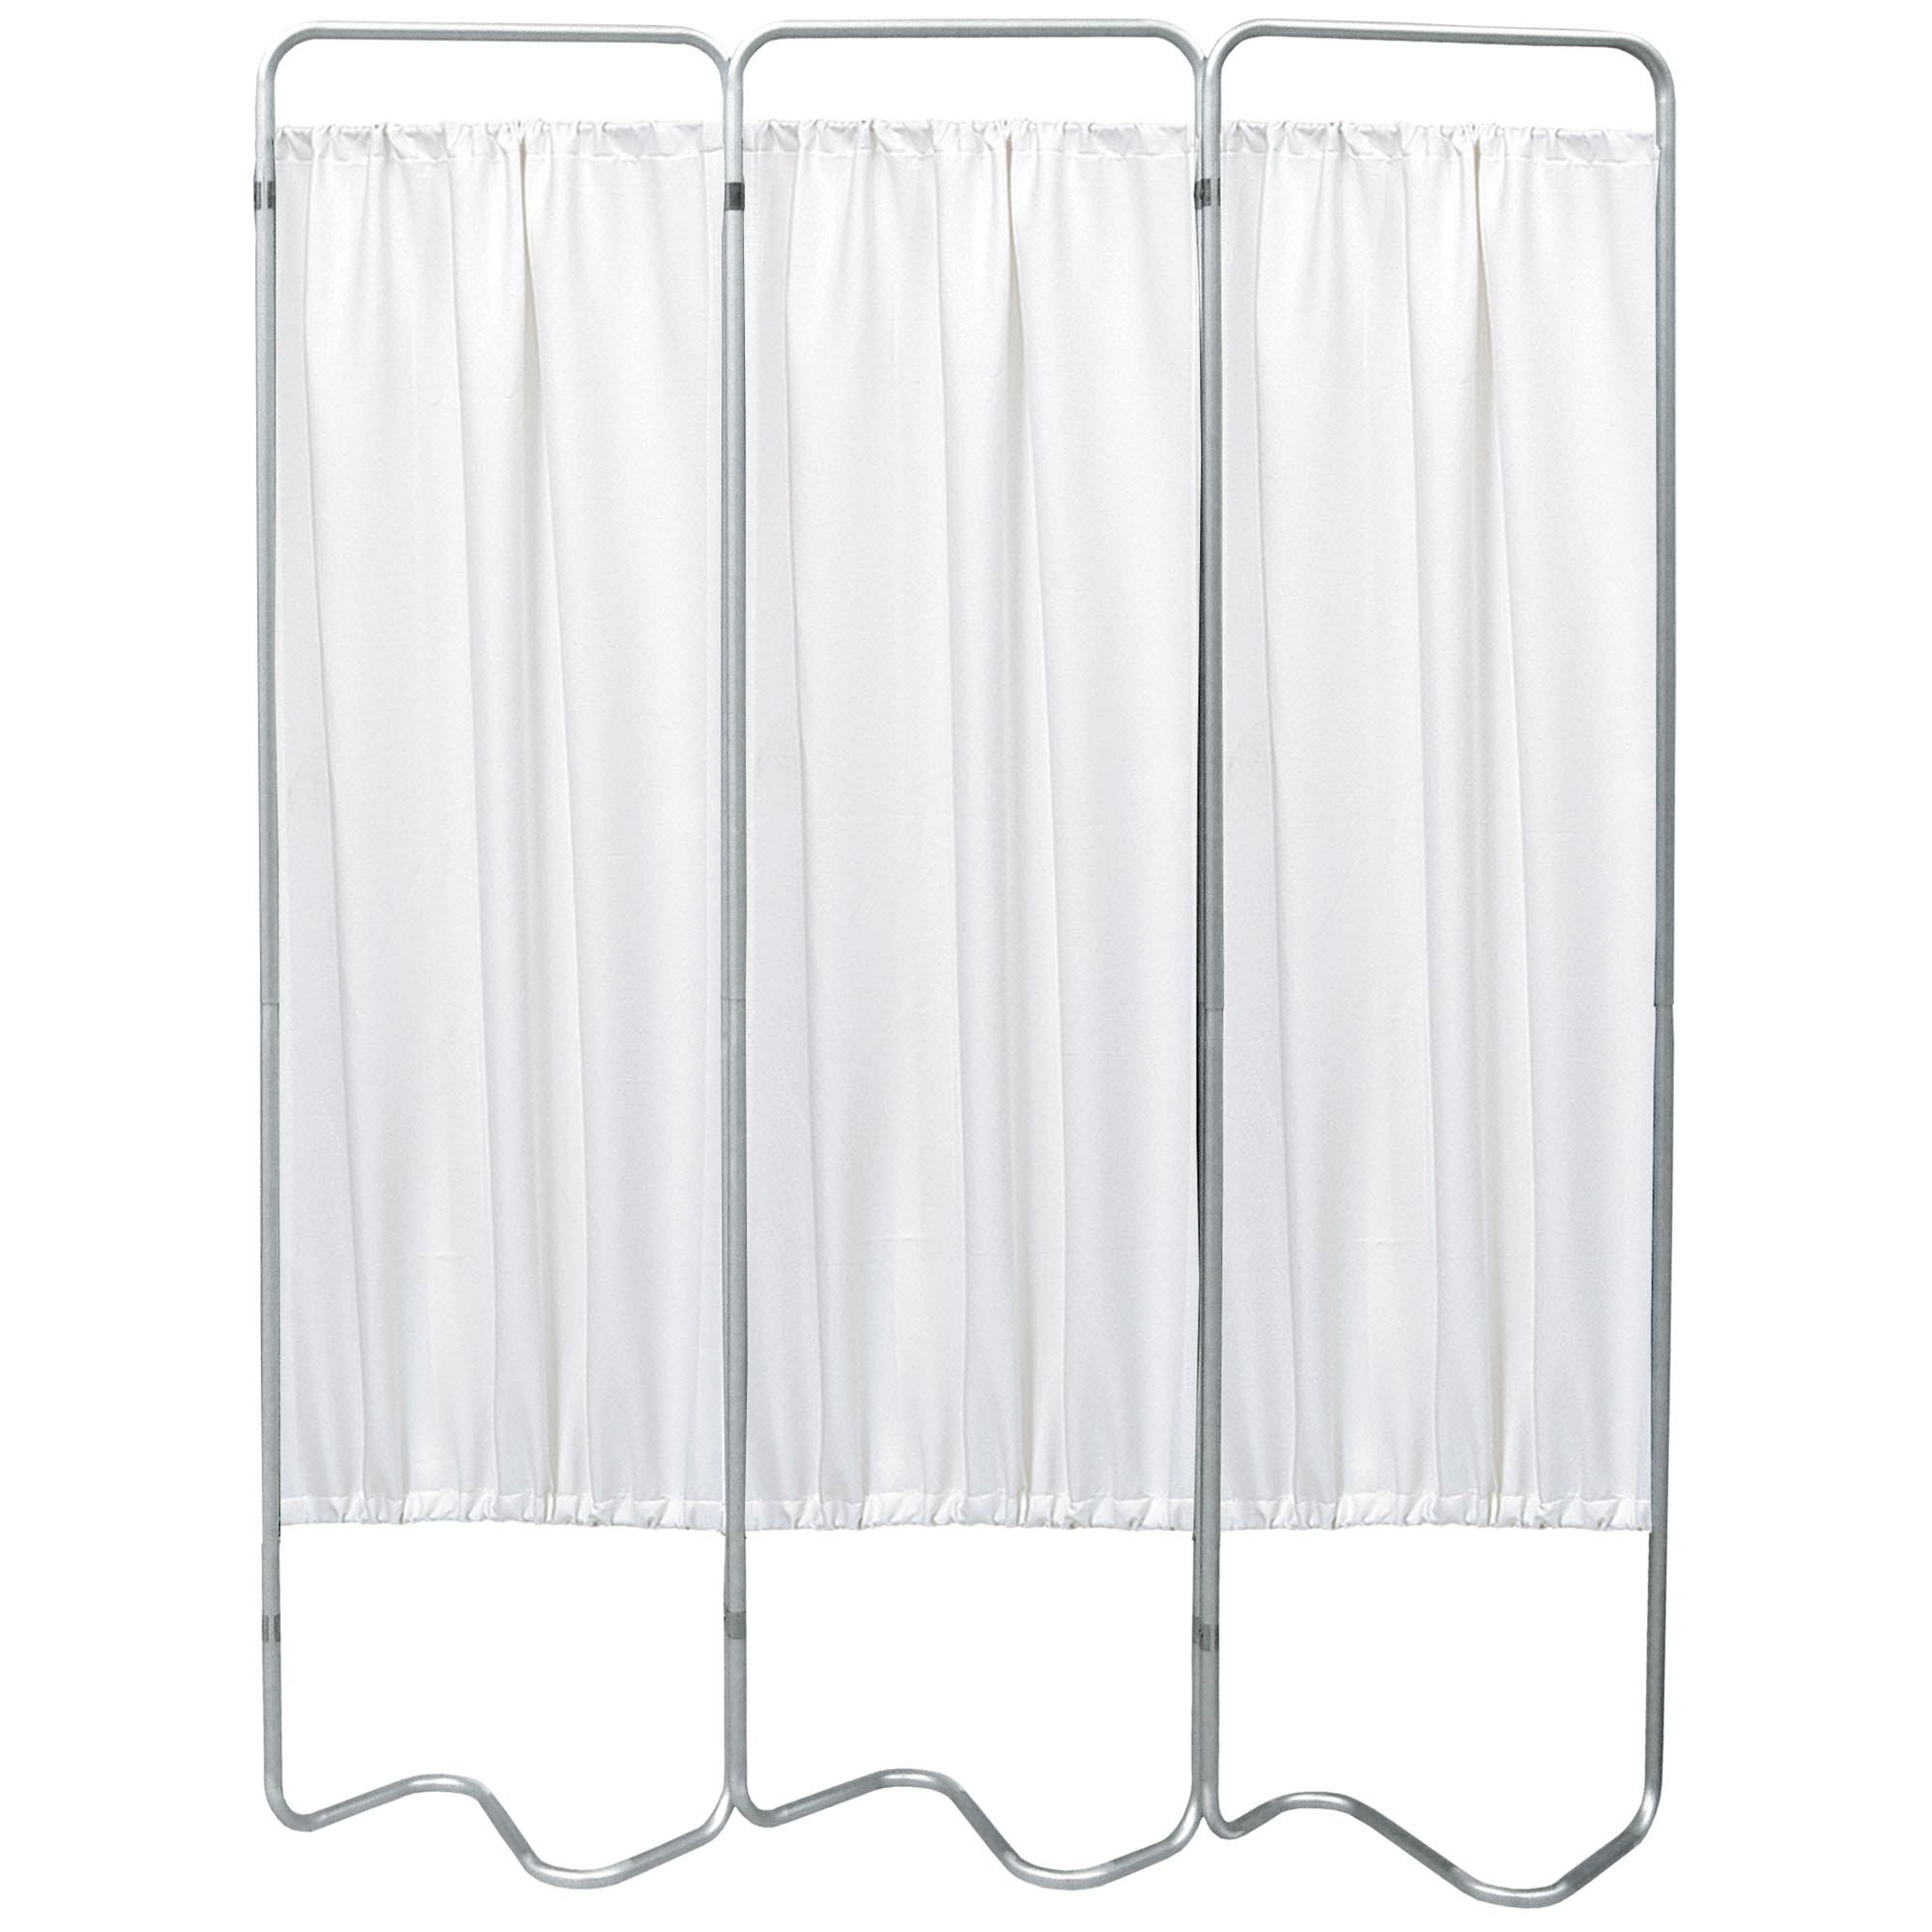 Beamatic 3 Section Folding Privacy Screen - White Vinyl Screen Panel